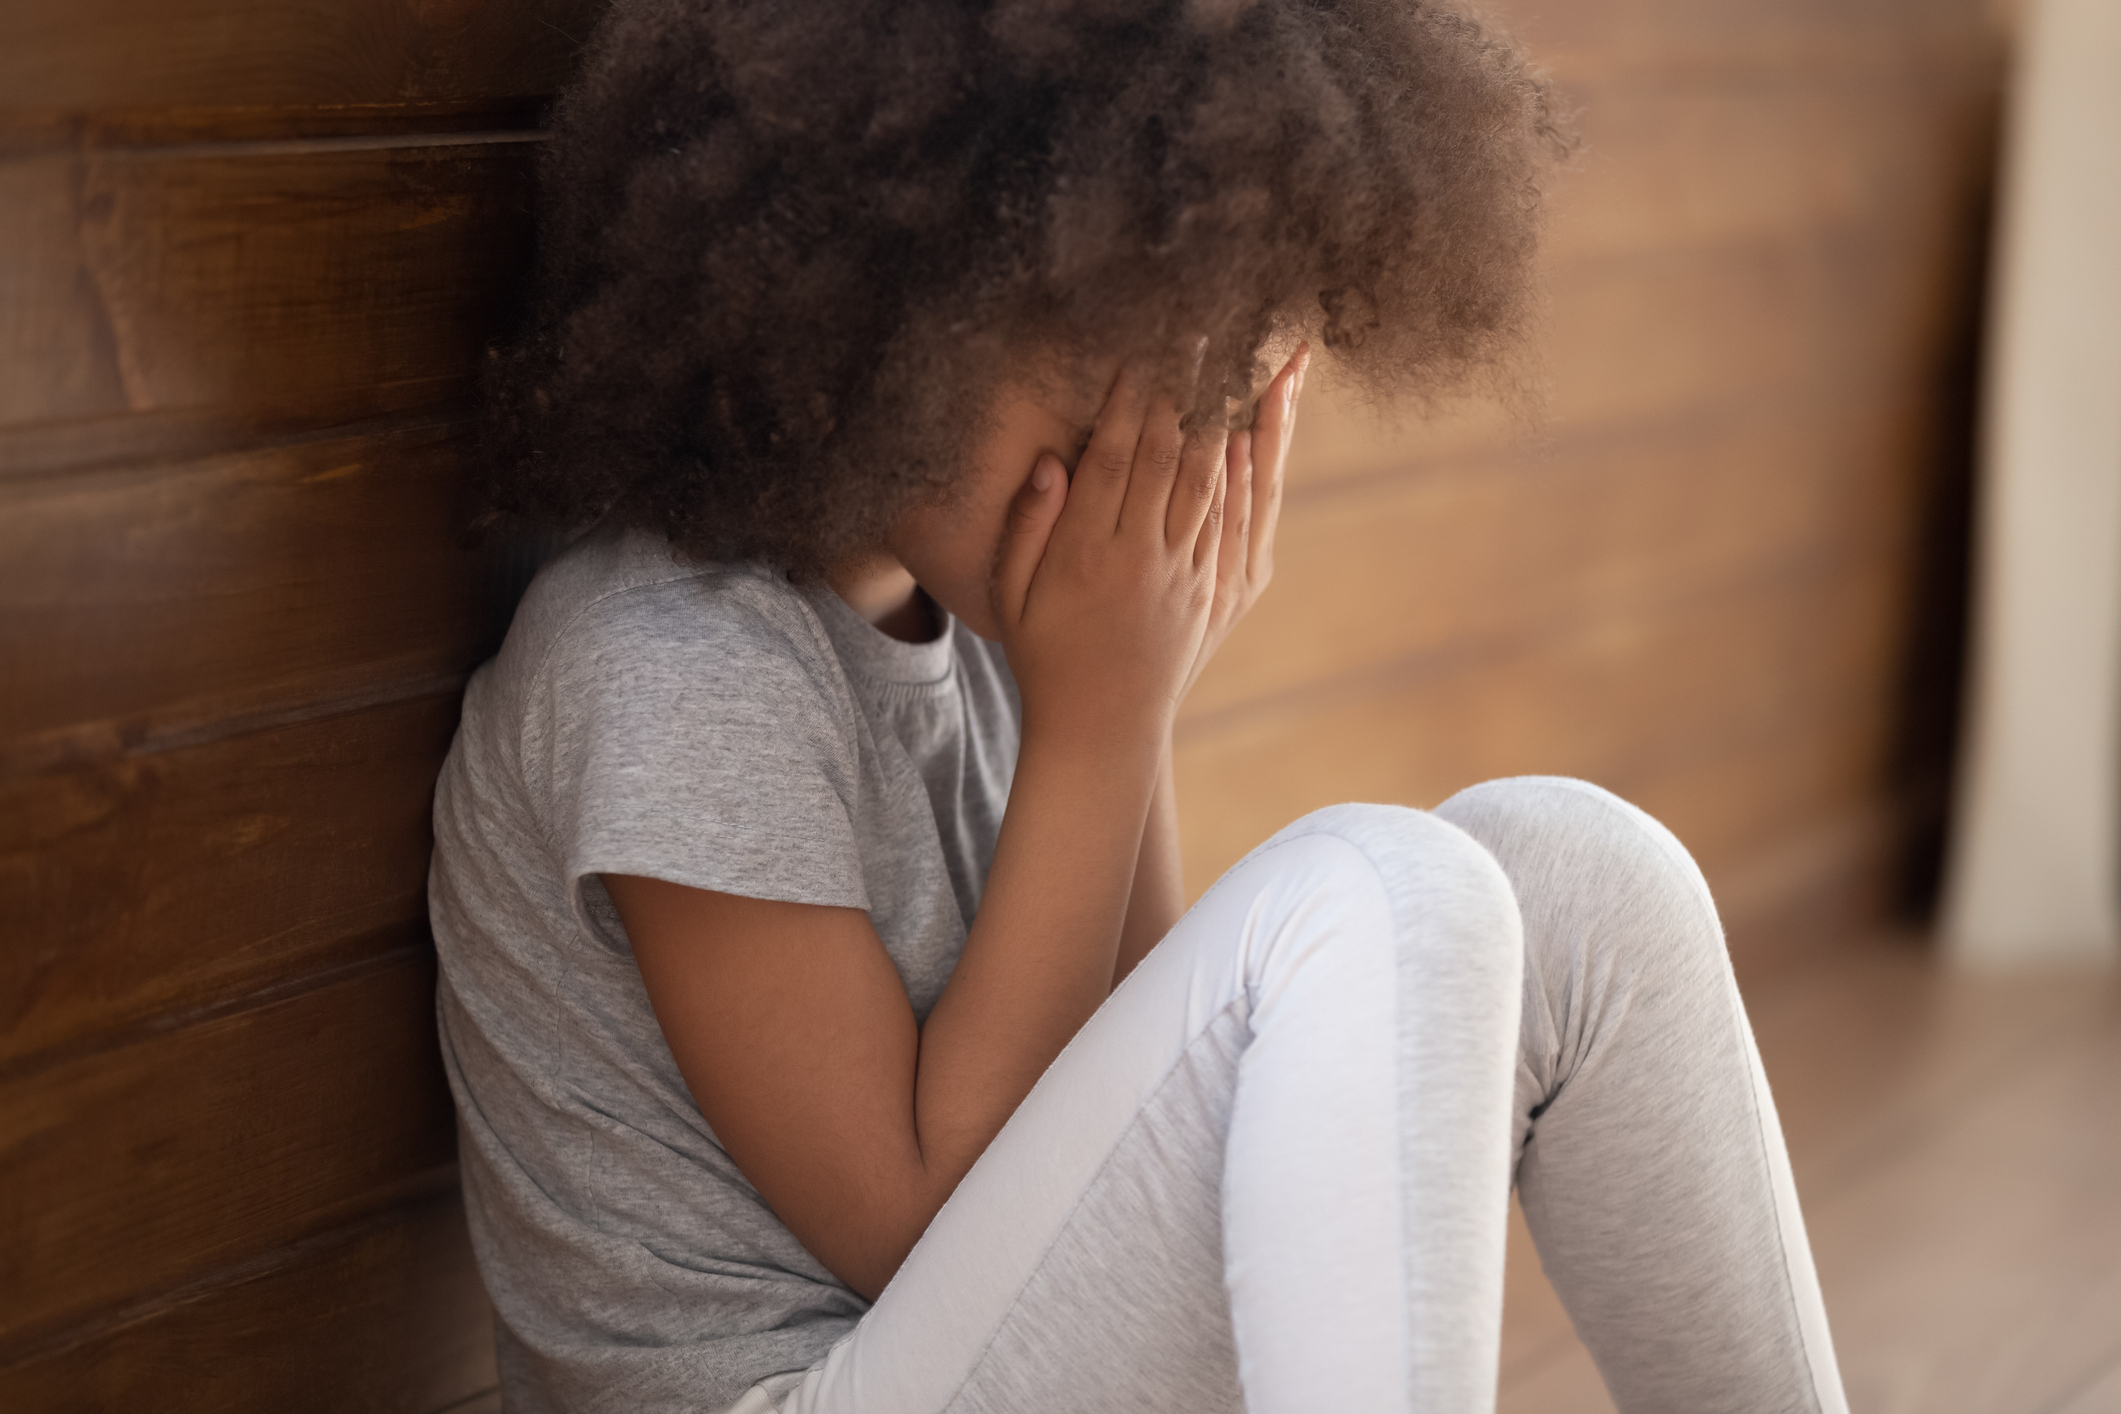 Upset small african american child girl crying covering face with hands sitting alone on floor, sad lonely orphan kid being bullied abused feeling stressed or scared, children violence abuse concept